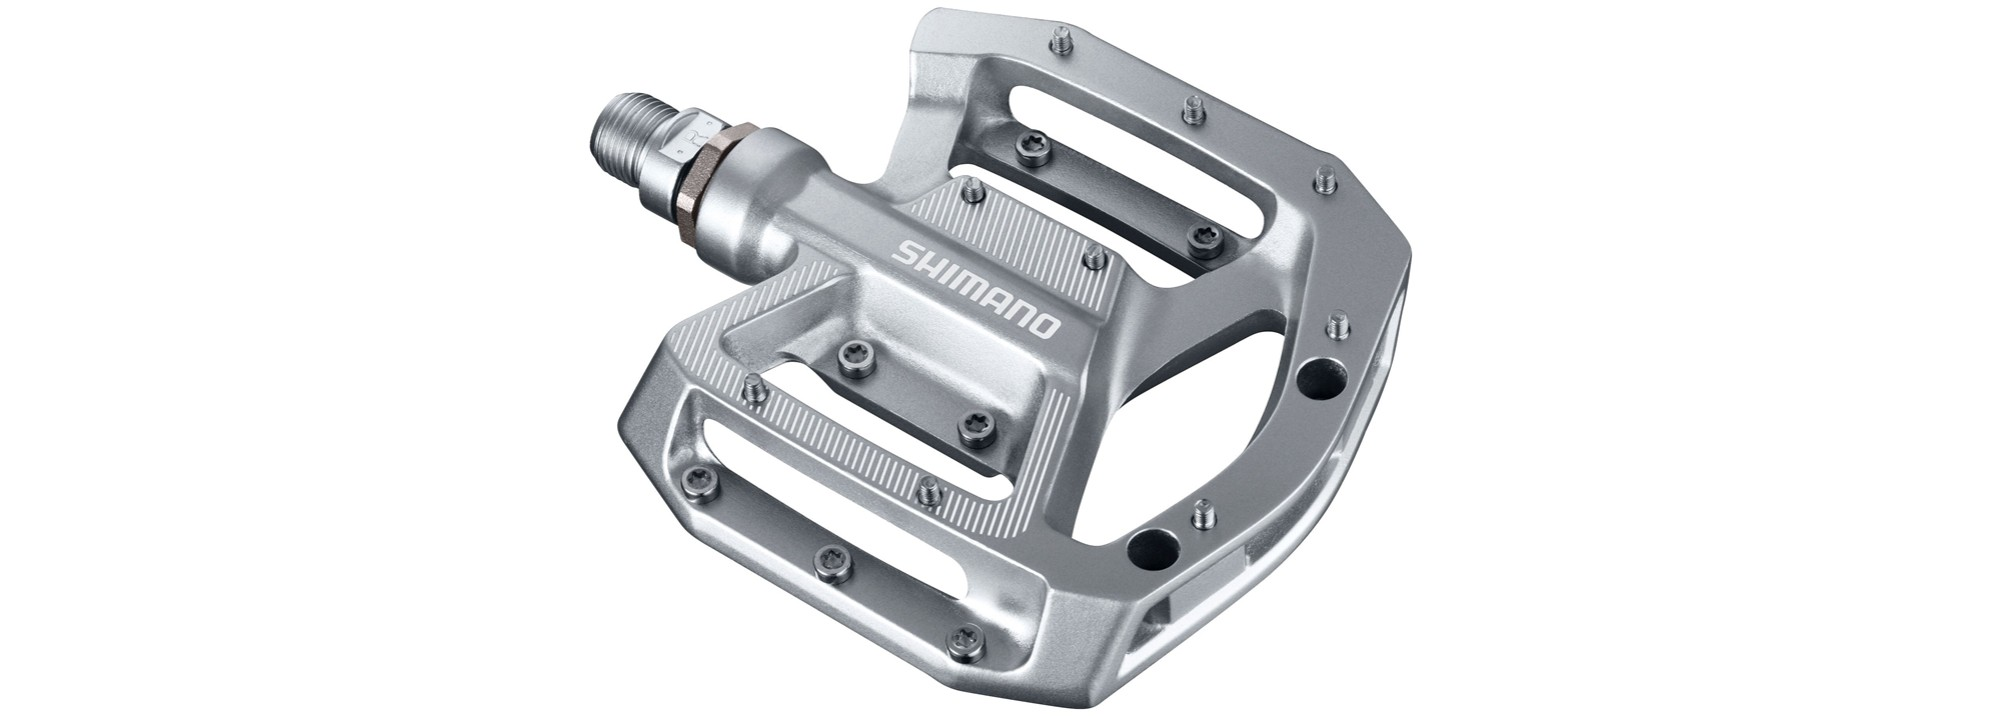 Shimano Flat pedal PD-GR500 flat pedal for riders that start on the Trail and All Mountain. This component of MTB incorporates screws (pins / bolts) adjustable in height and cromolyy axles sealed of low maintenance.